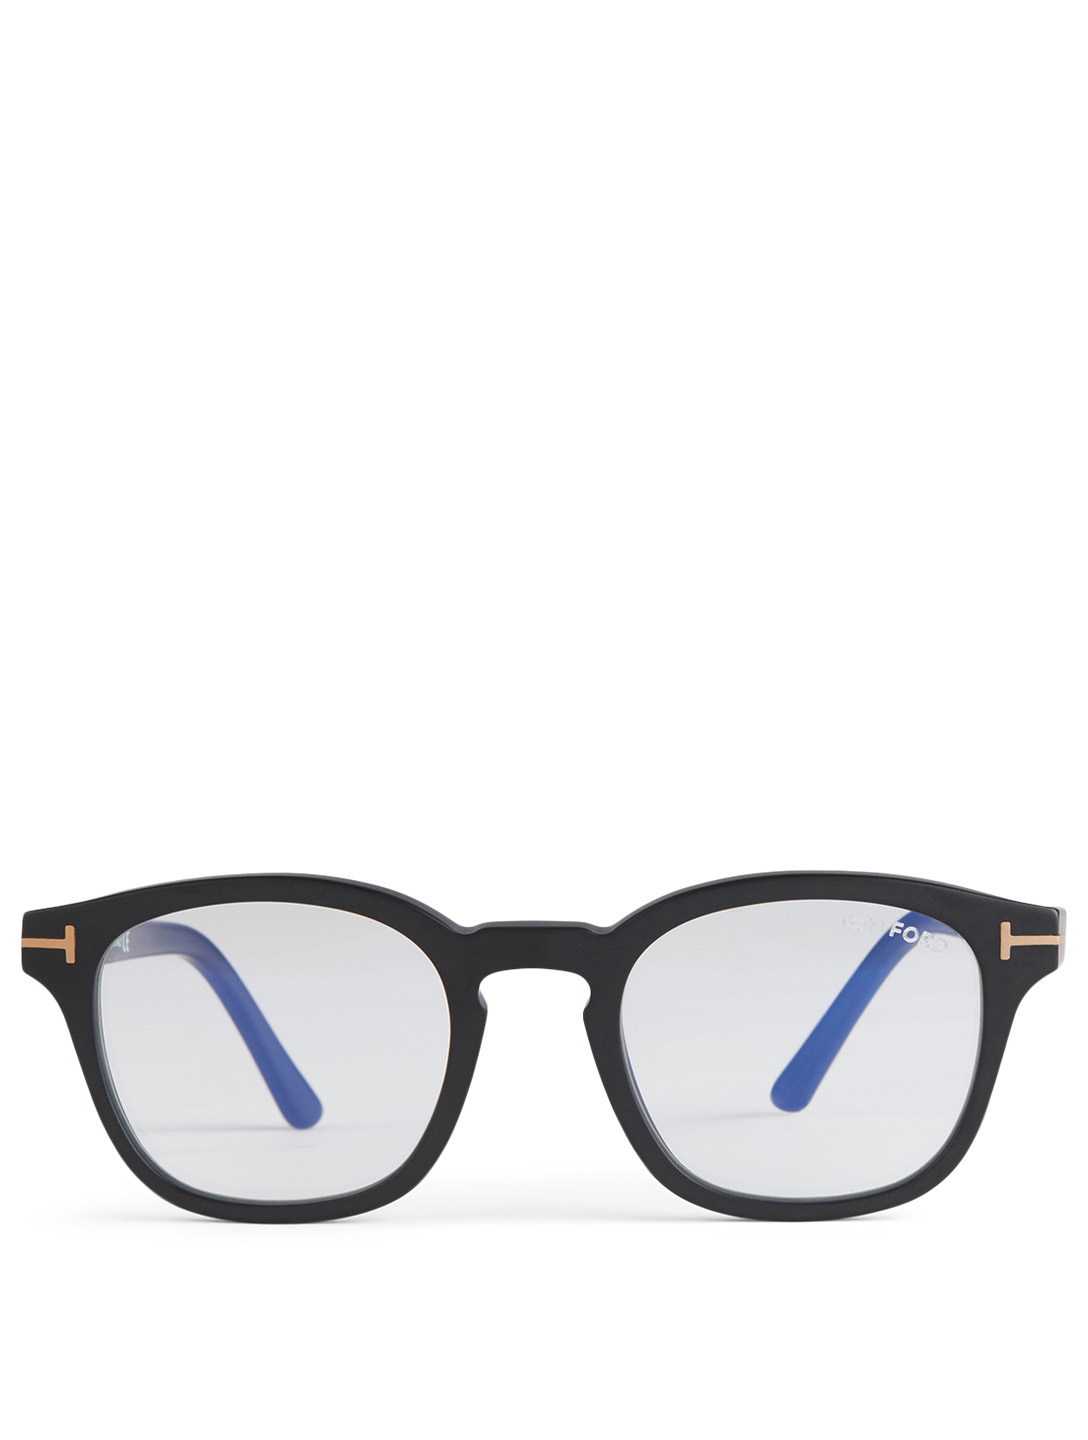 TOM FORD Square Optical Glasses With Blue Block Lenses And